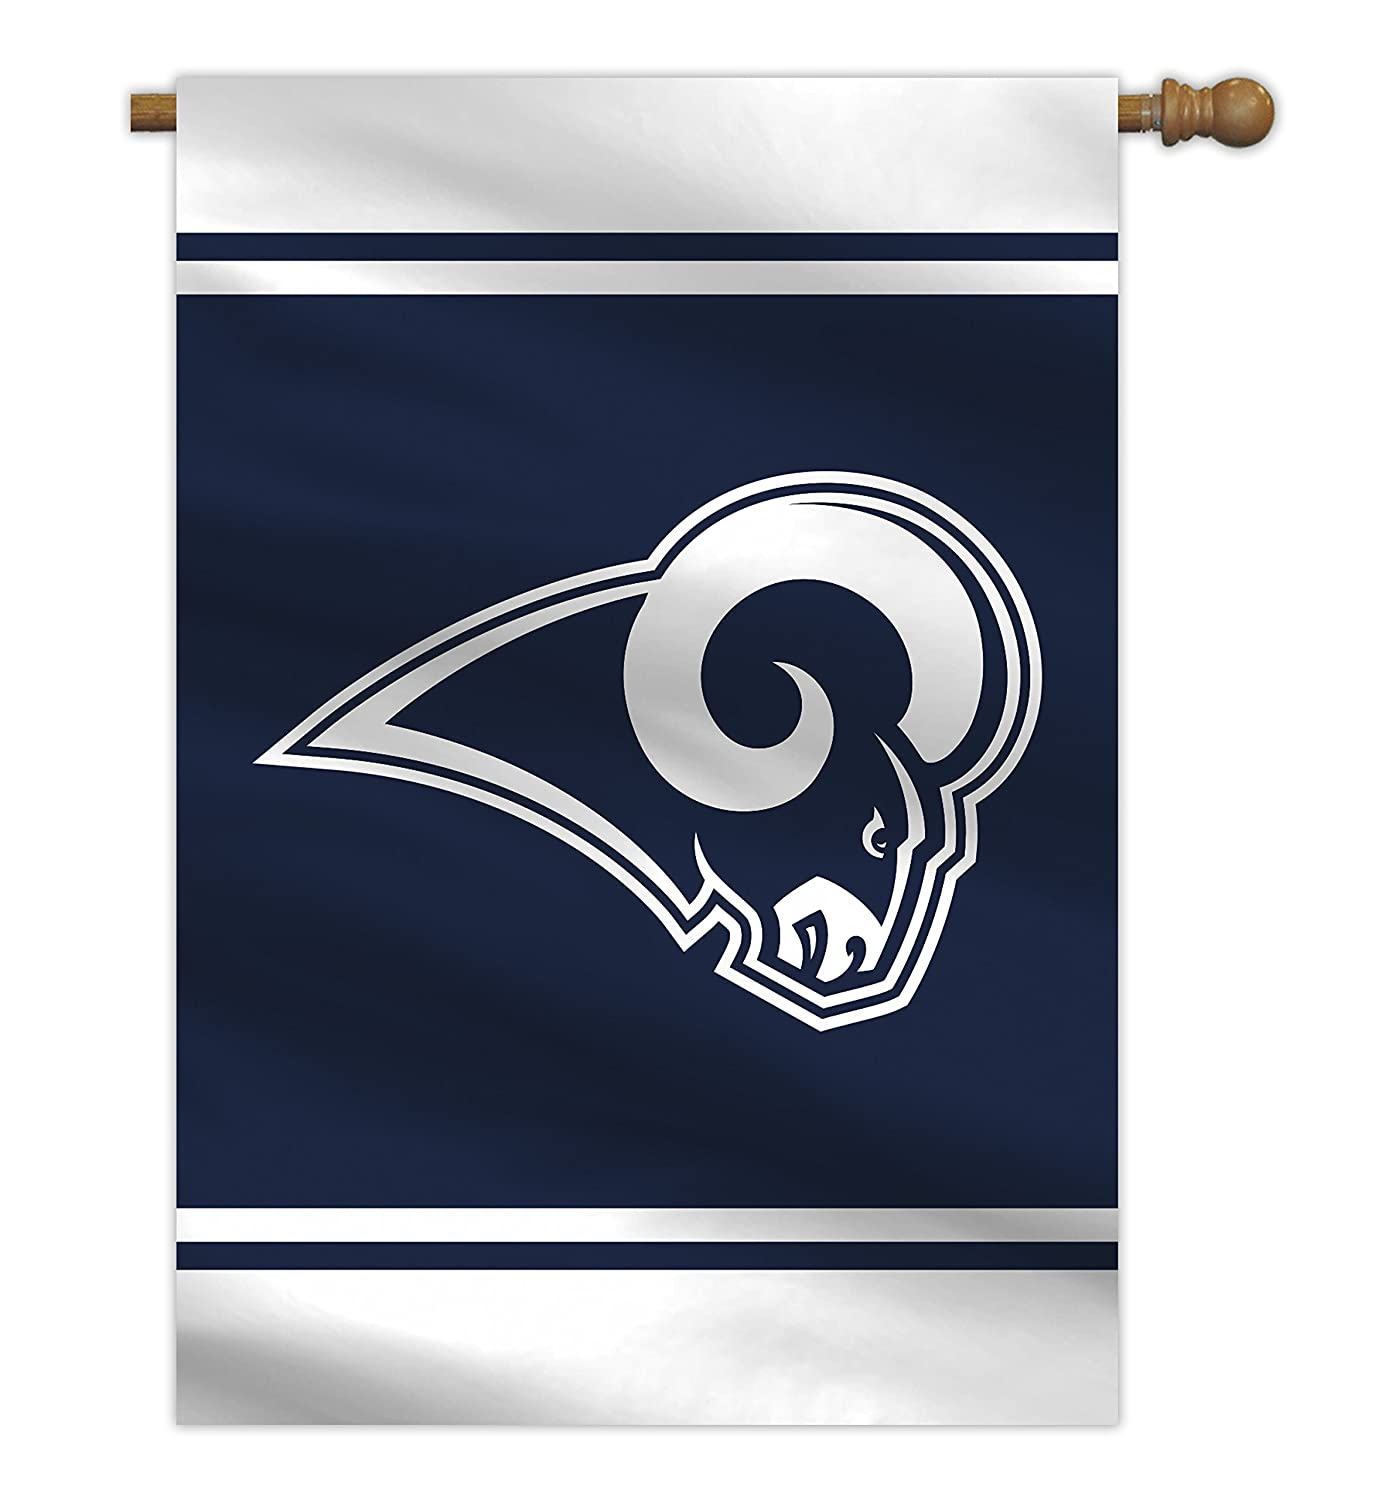 NFL House Banner 28 X 40 1- Sided BSI Products Inc. 94648B-P